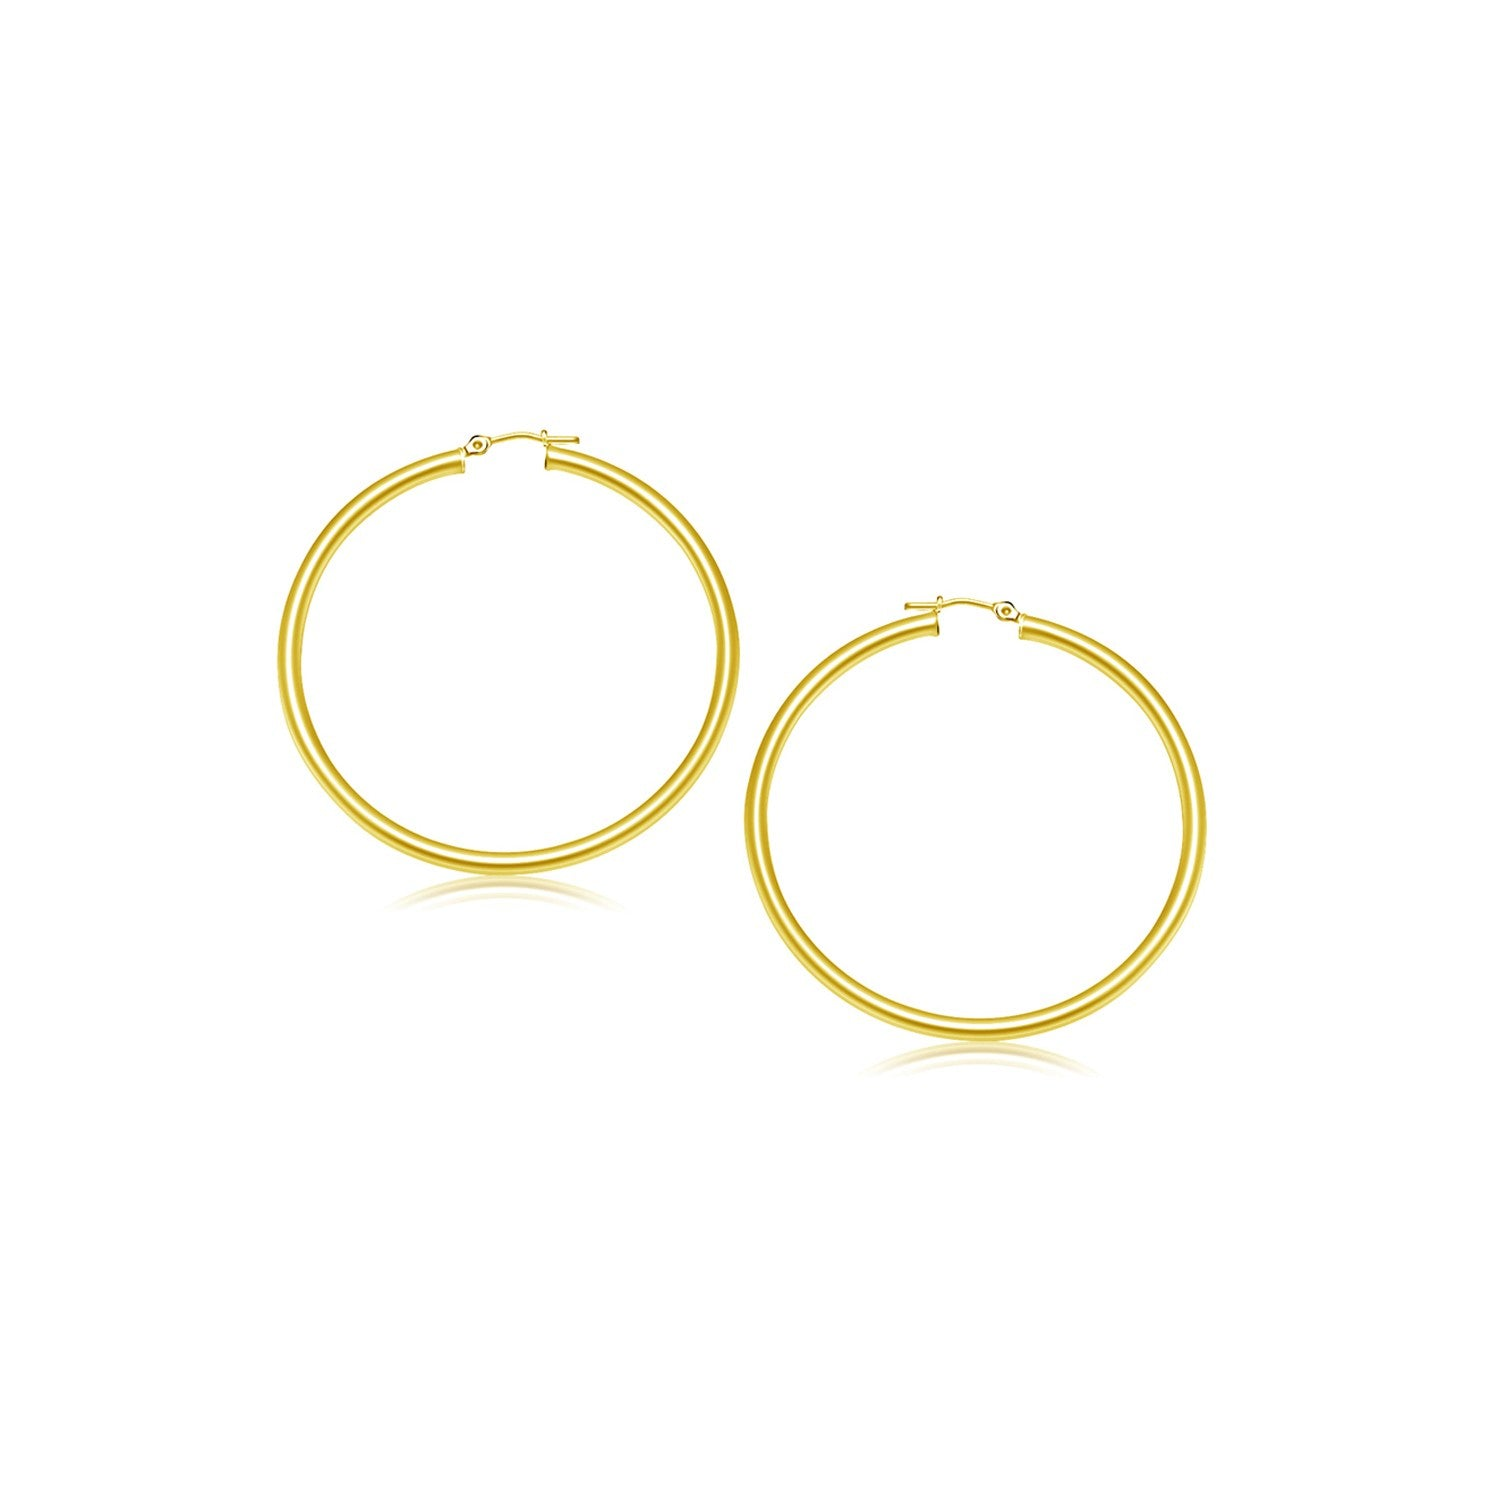 Unique Hollywood Style 14K Yellow Gold Polished Hoop Earrings (2- mm)